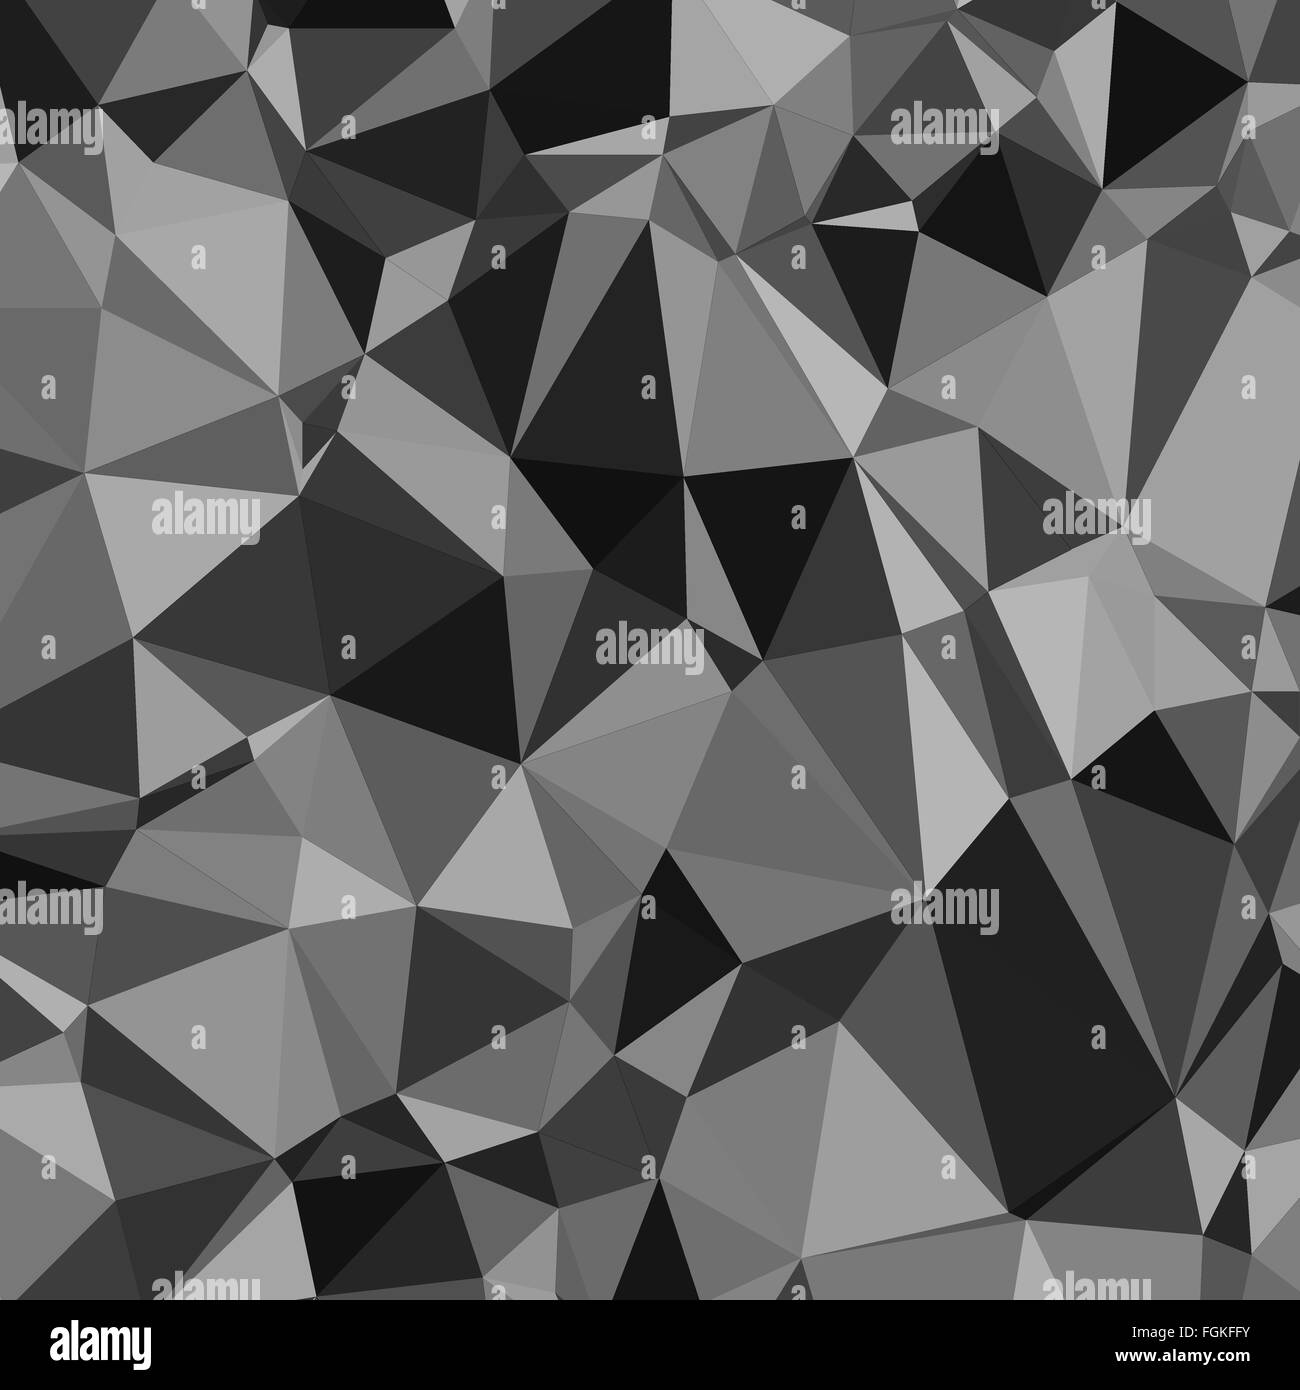 Abstract Black And White Triangle Pattern Wallpaper Background Design Stock Vector Image Art Alamy